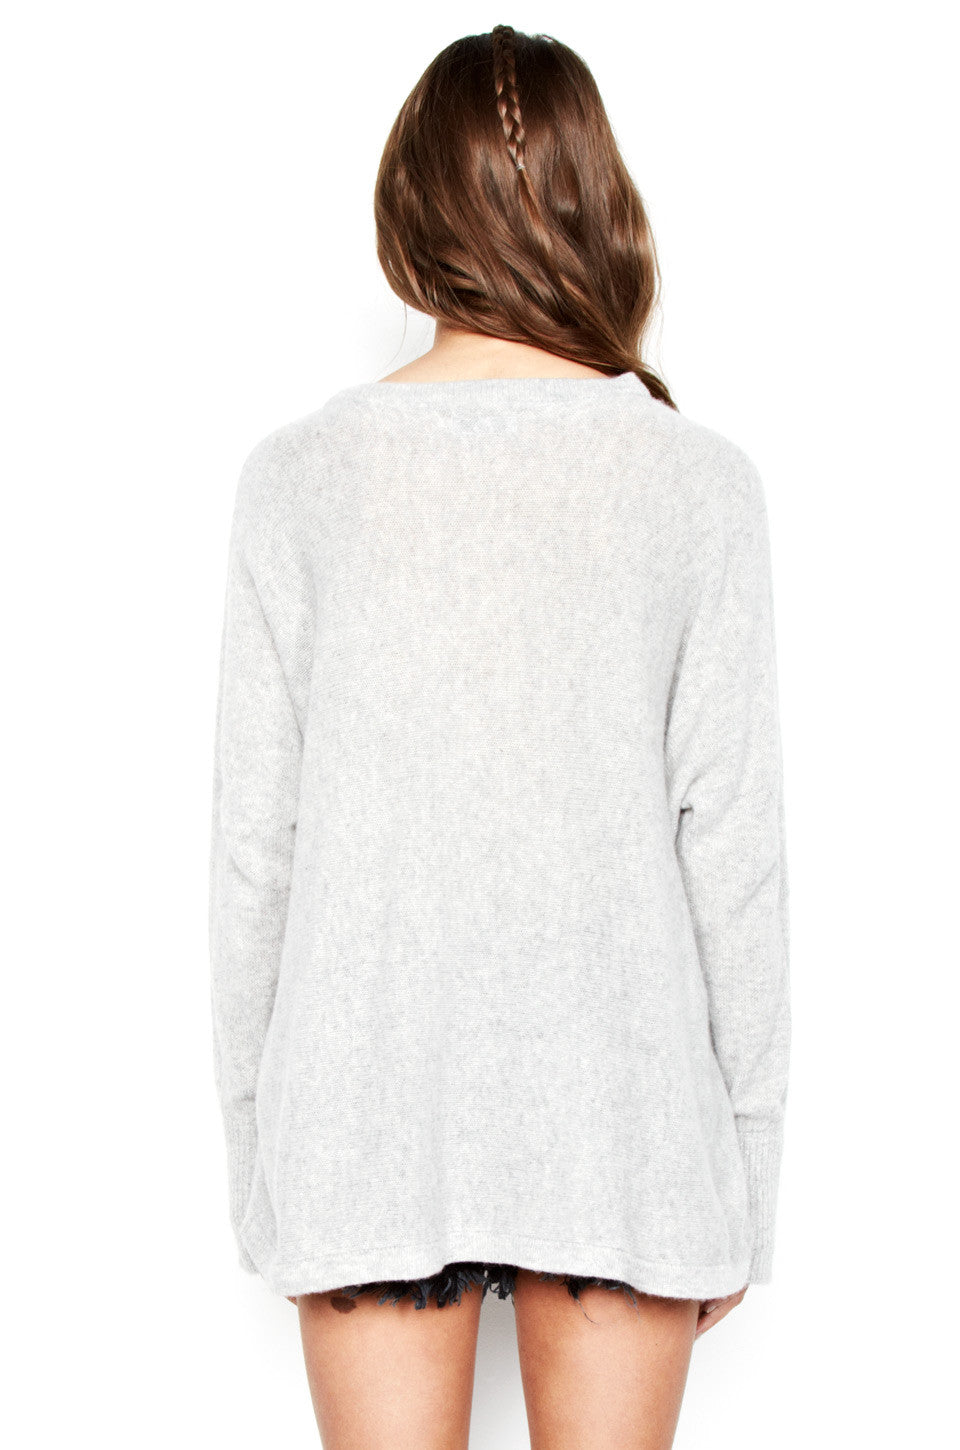 Hollis I'm A Mess L/S Cashmere Pullover Sweater w/Thumbholes - Lauren Moshi - 3